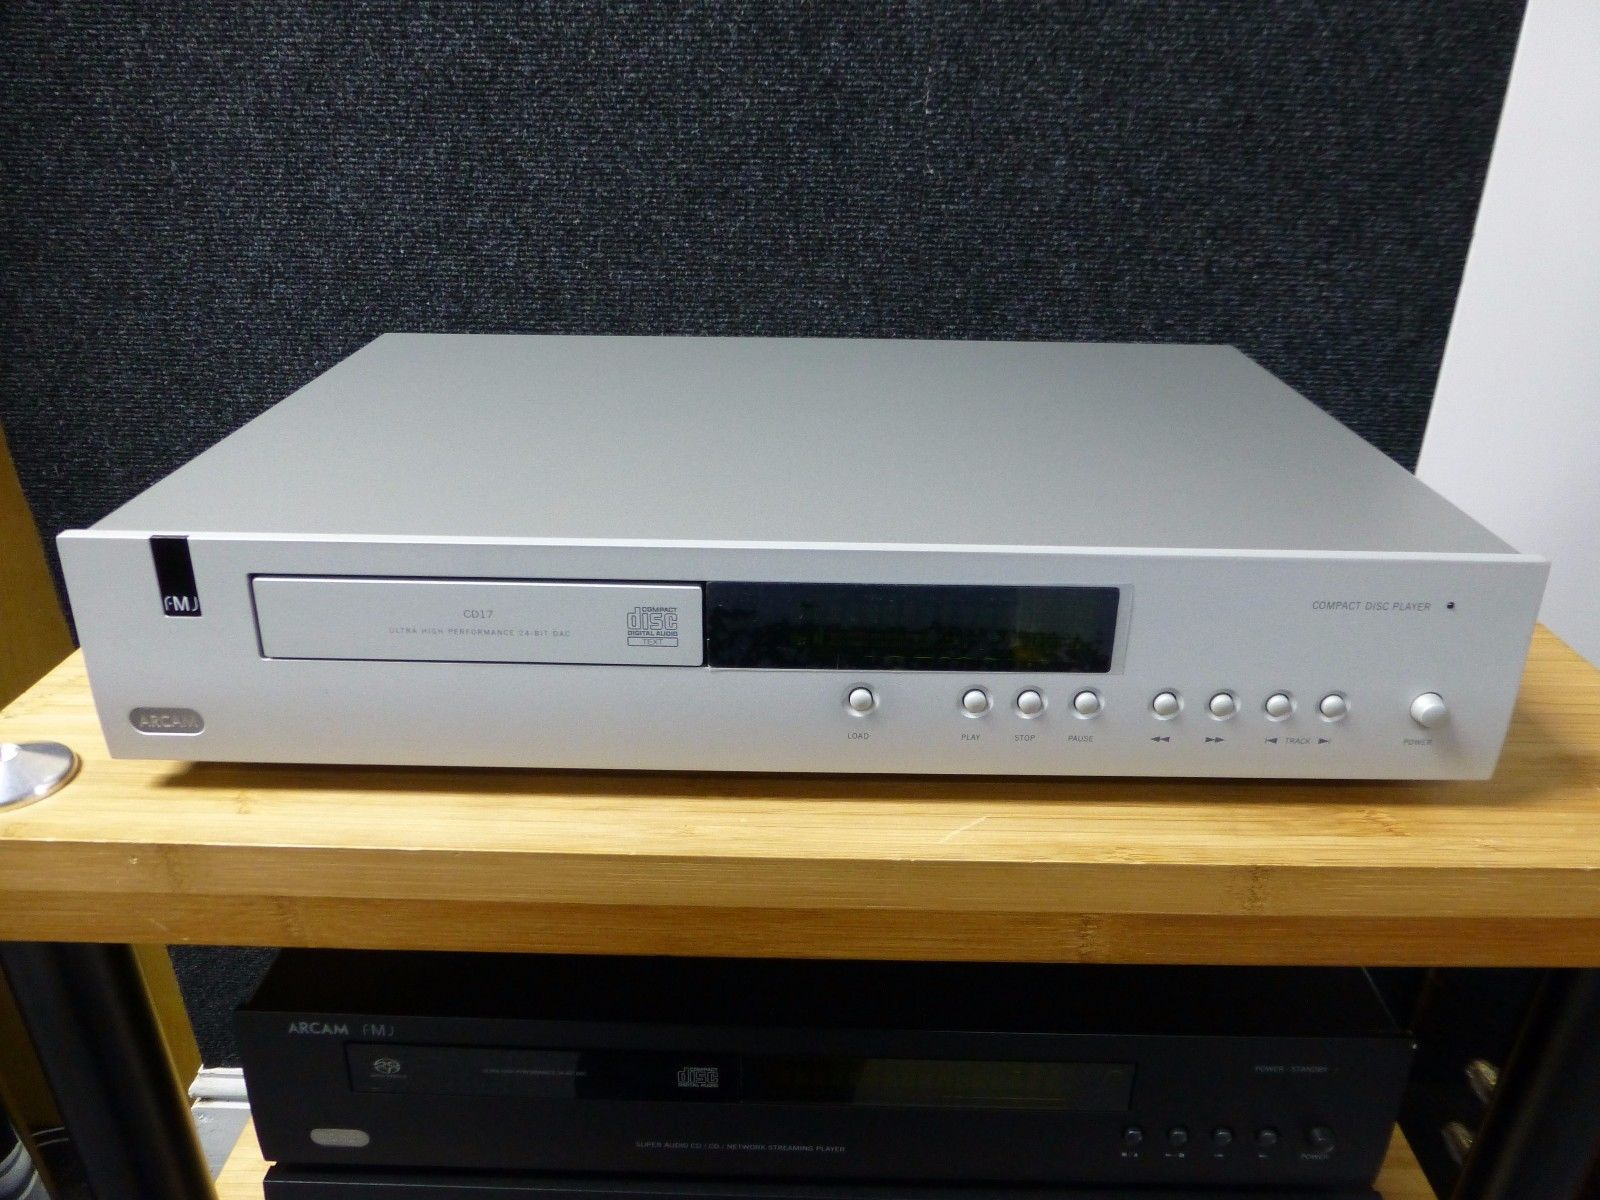 Picture of Arcam FMJ CD17 CD Player